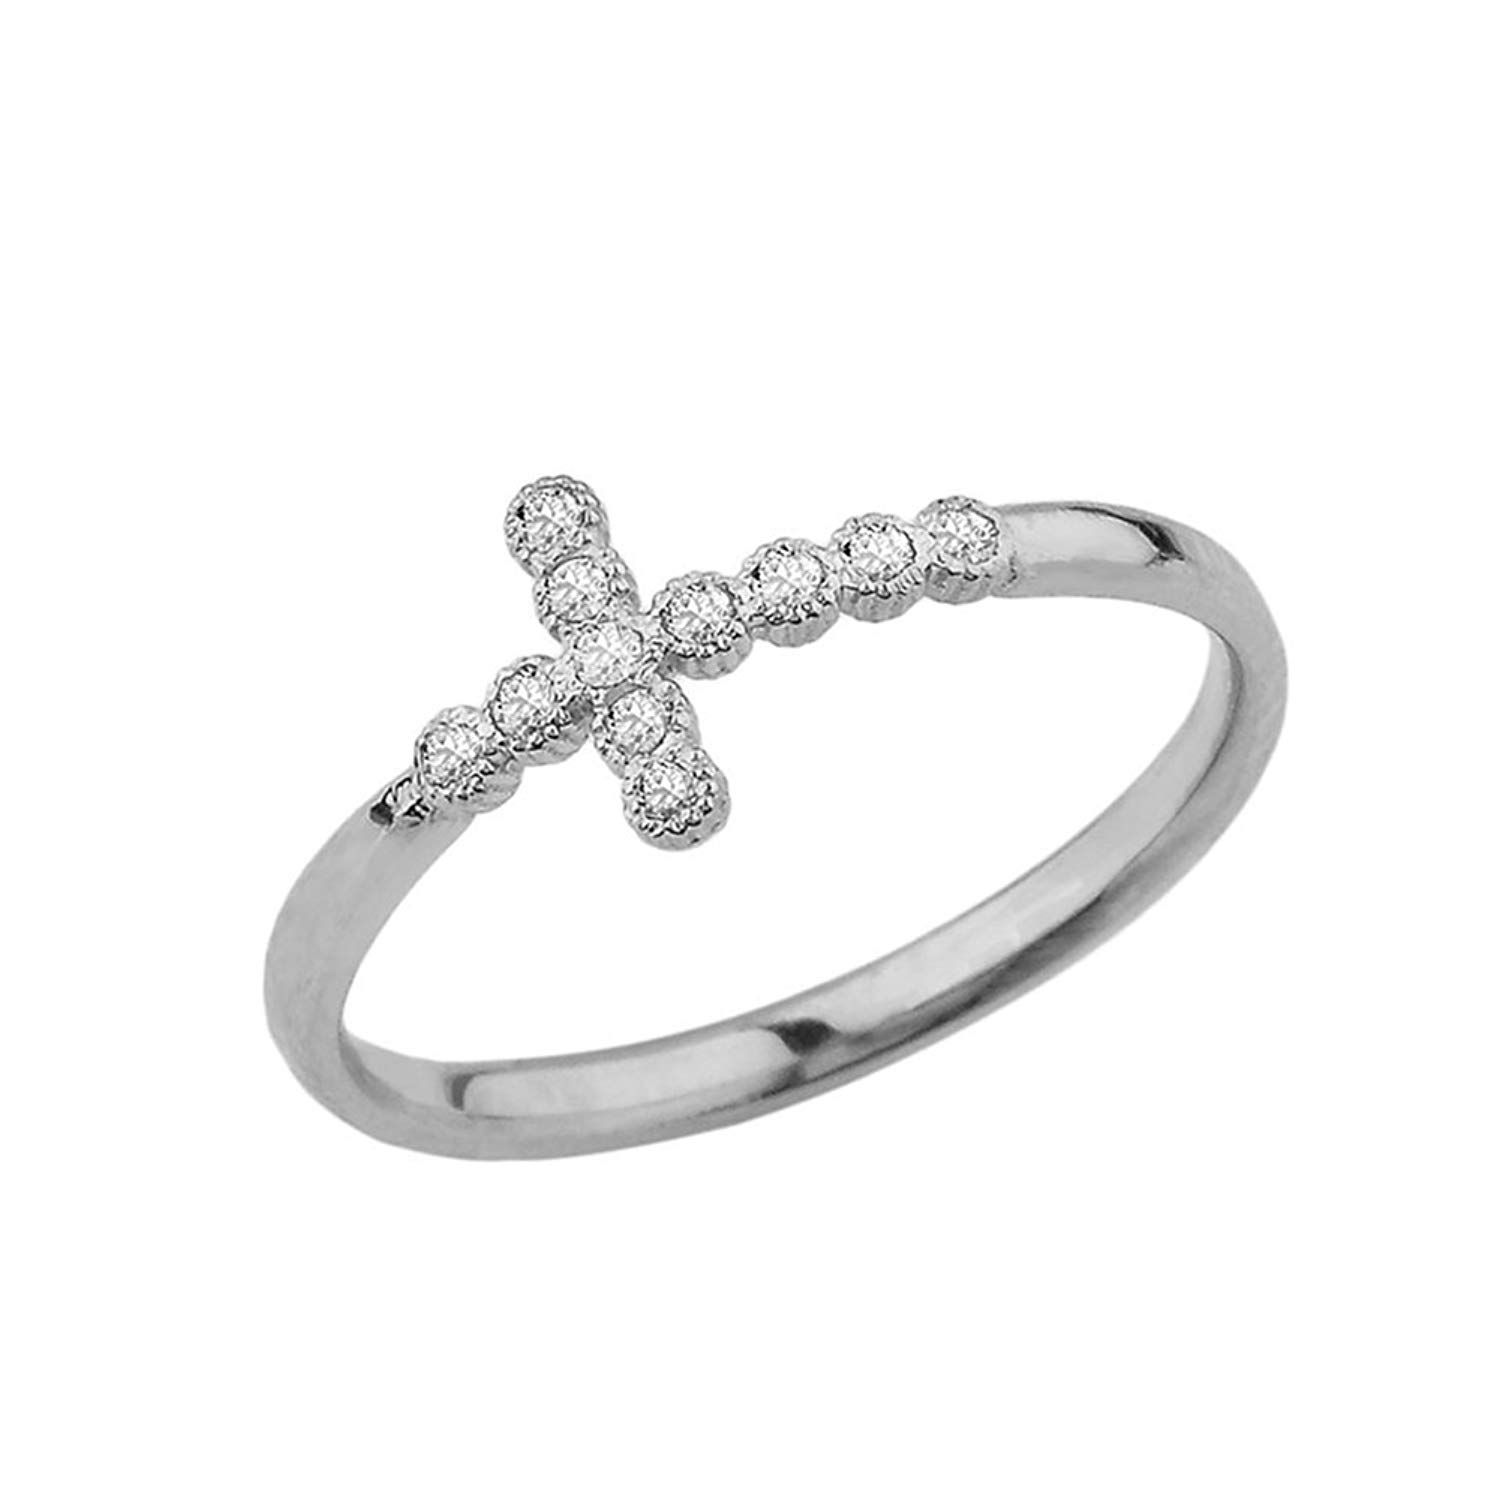 Fine 10k White Gold Modern Diamond Sidesways Cross Ring Thanks For Seeing Our Photo This Is An Affiliate Link Sta Modern Diamonds Cross Ring White Gold